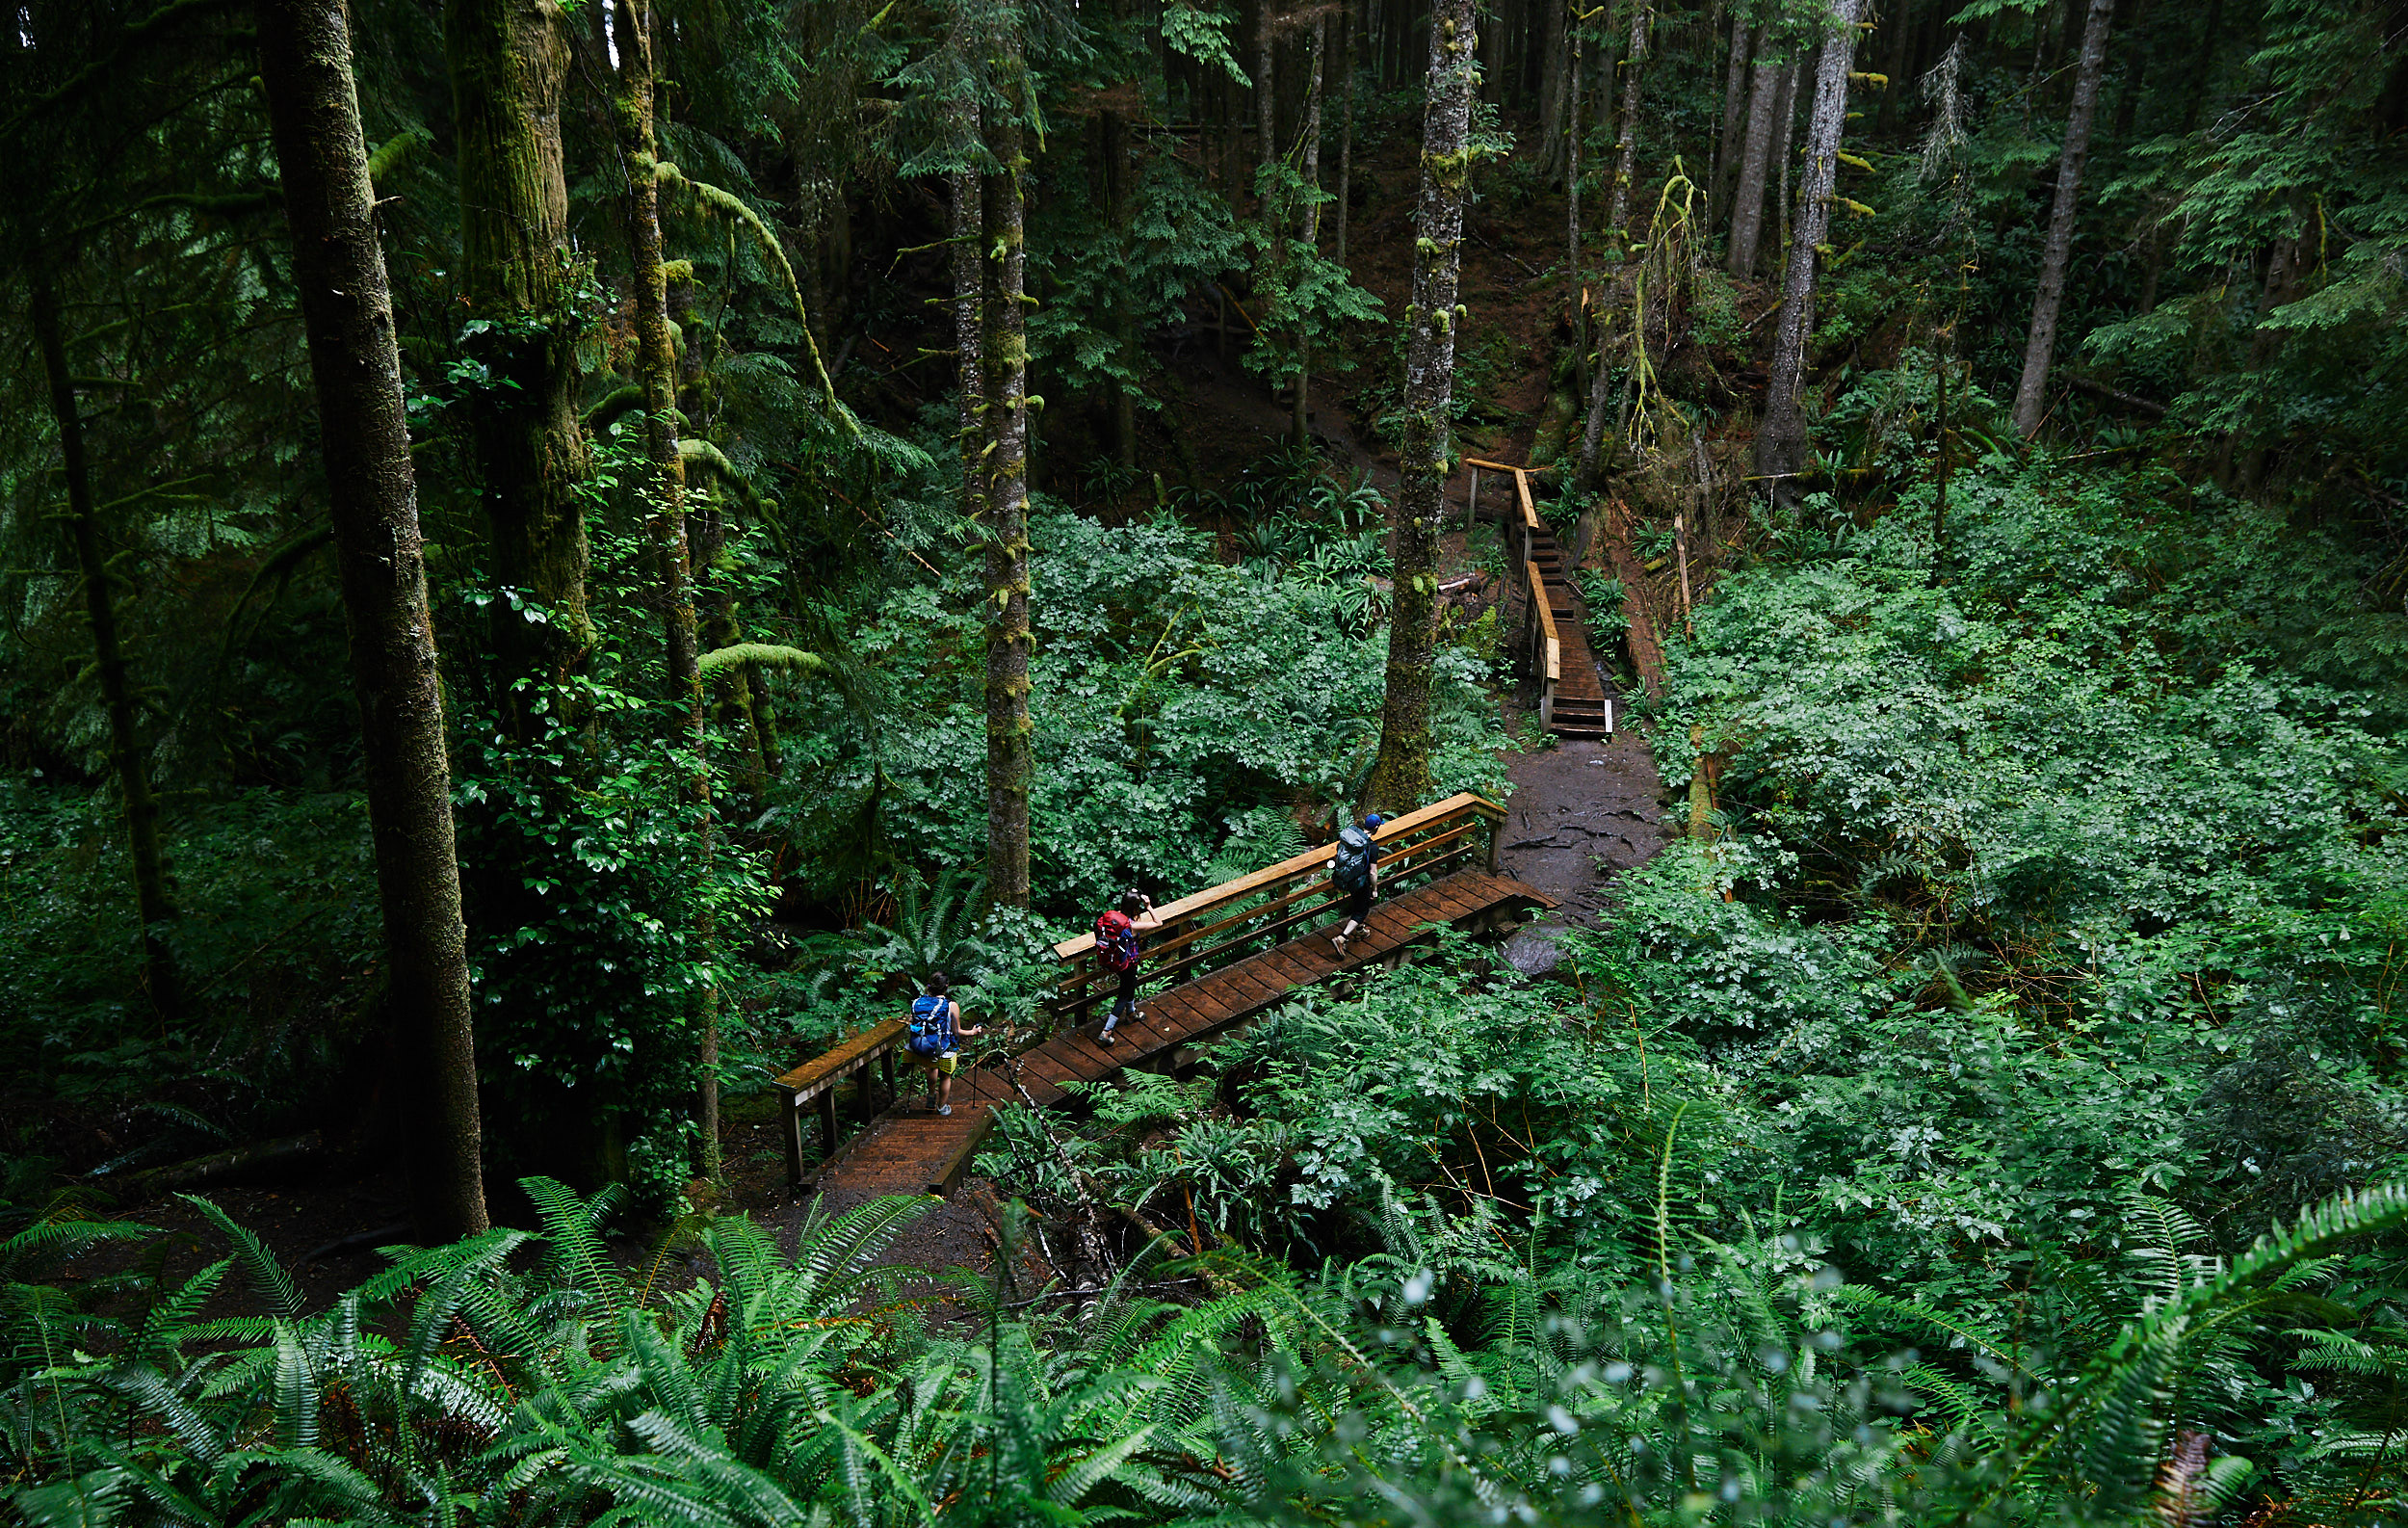 The trail has a number of bridges and walkways in varying condition.